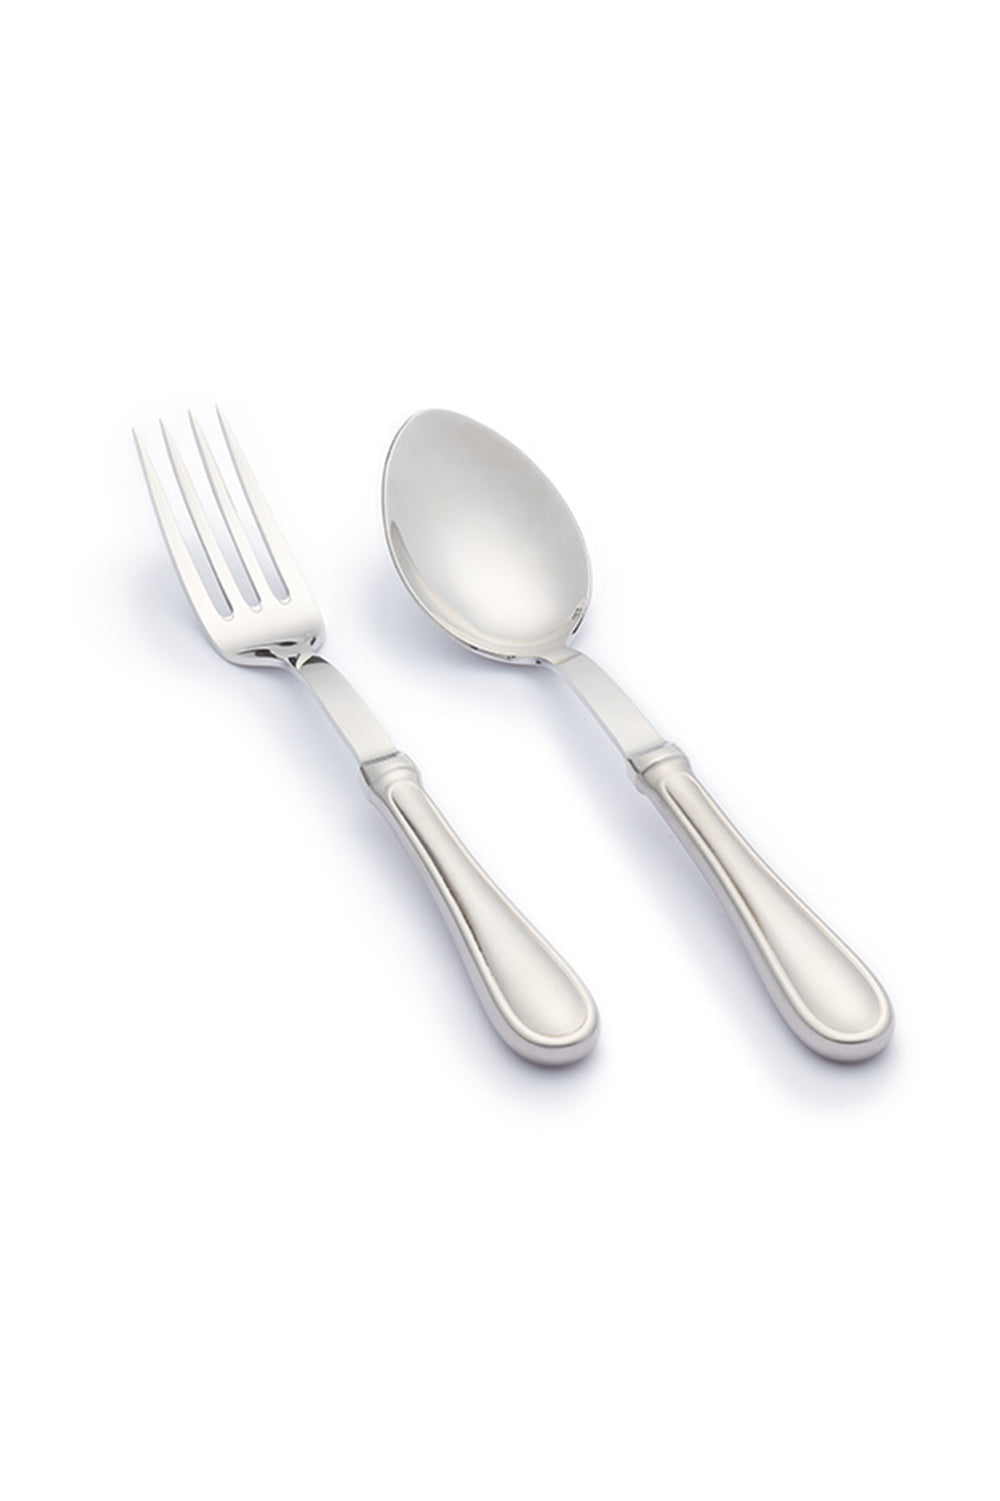 Serving utensils set Cottage